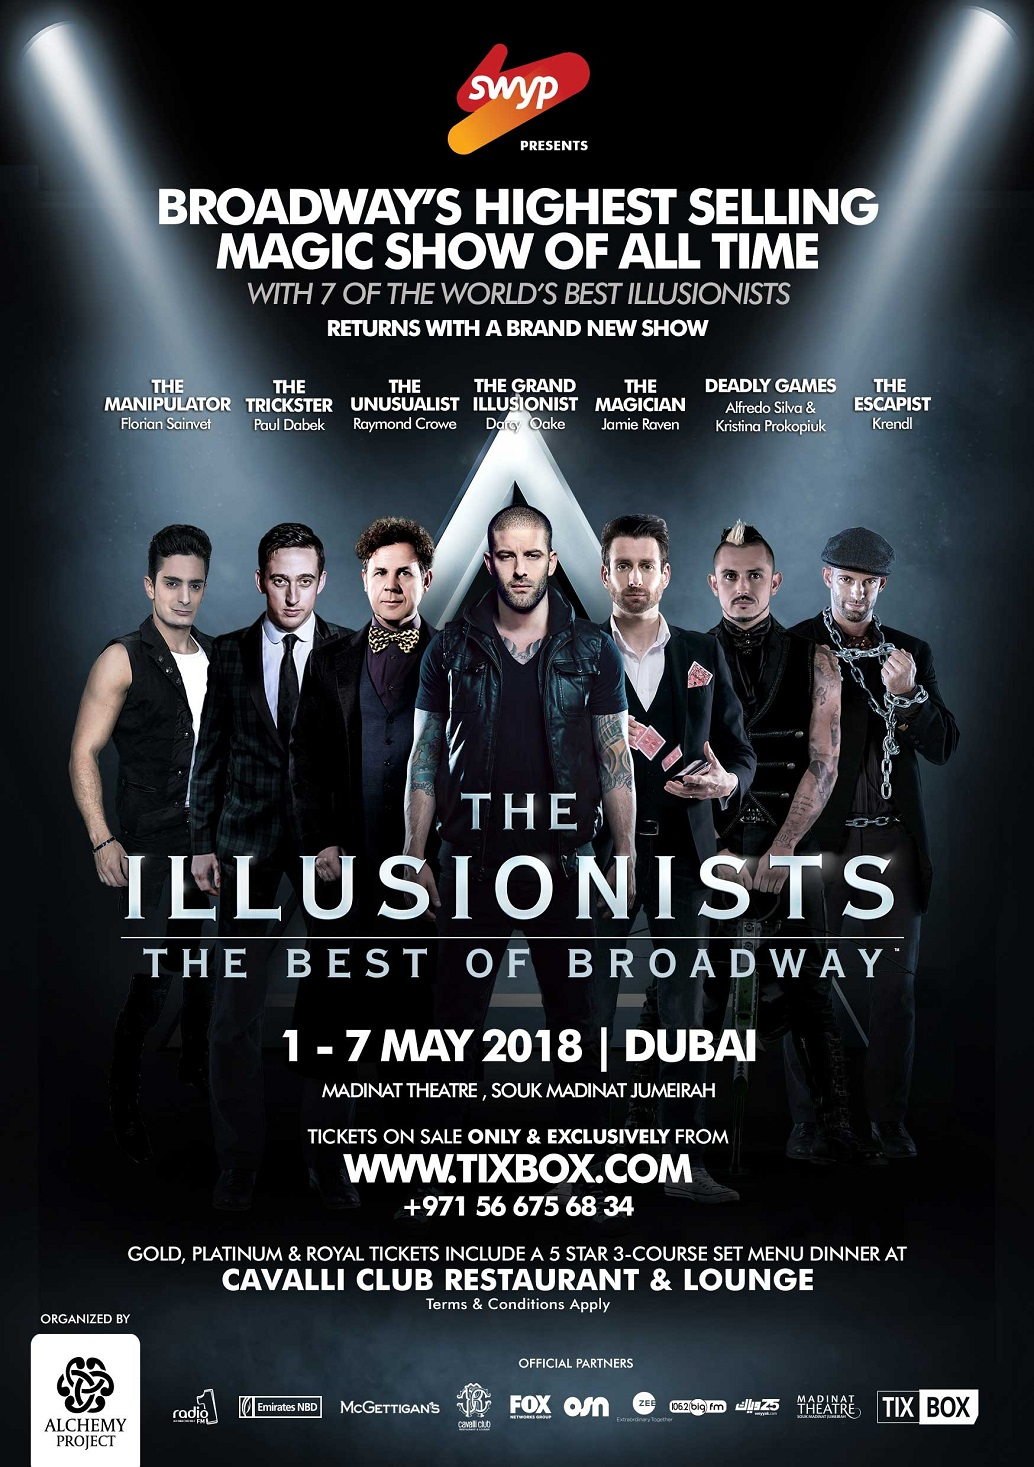 The illusionists - Dubai